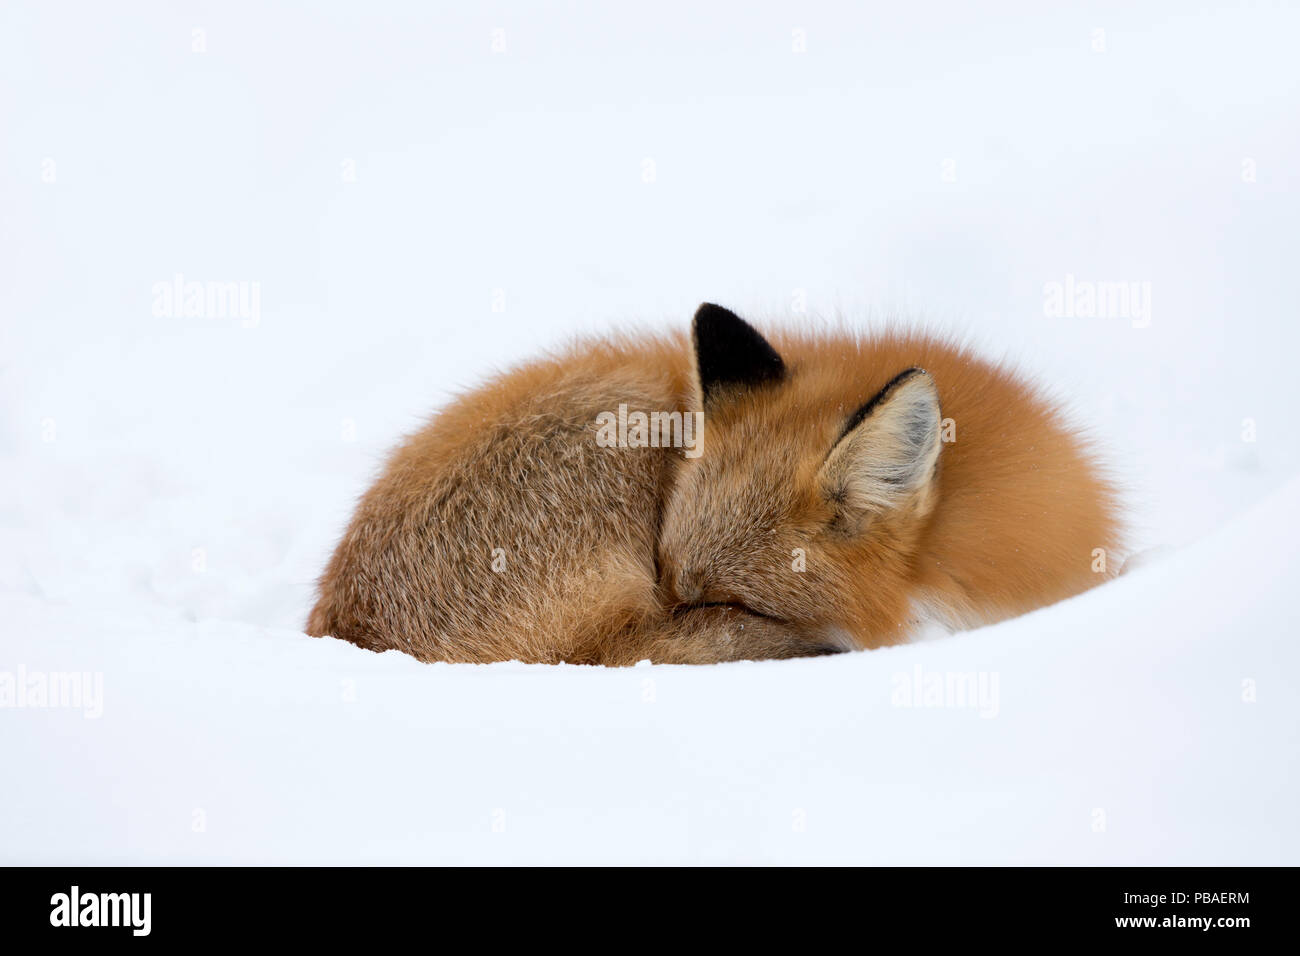 Red Fox (Vulpes vulpes) asleep in the snow, Churchill, Cananda, November - Stock Image